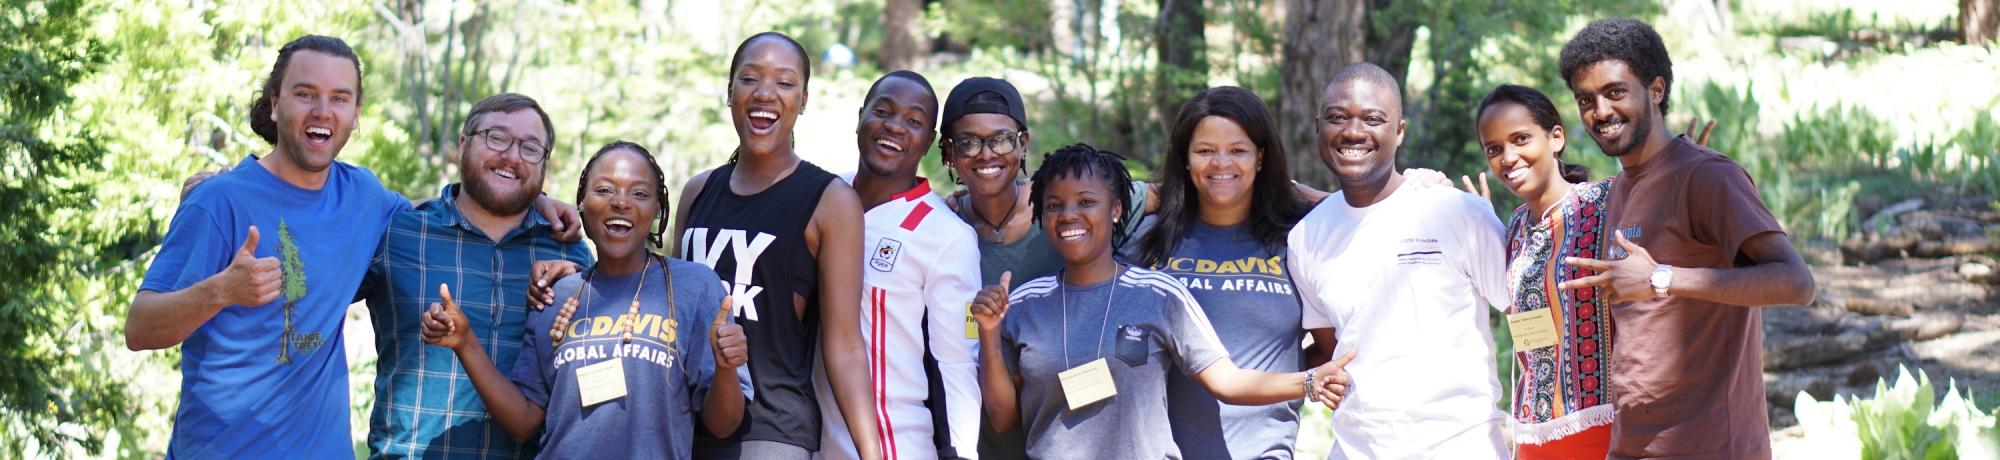 Mandela Fellows in Tahoe